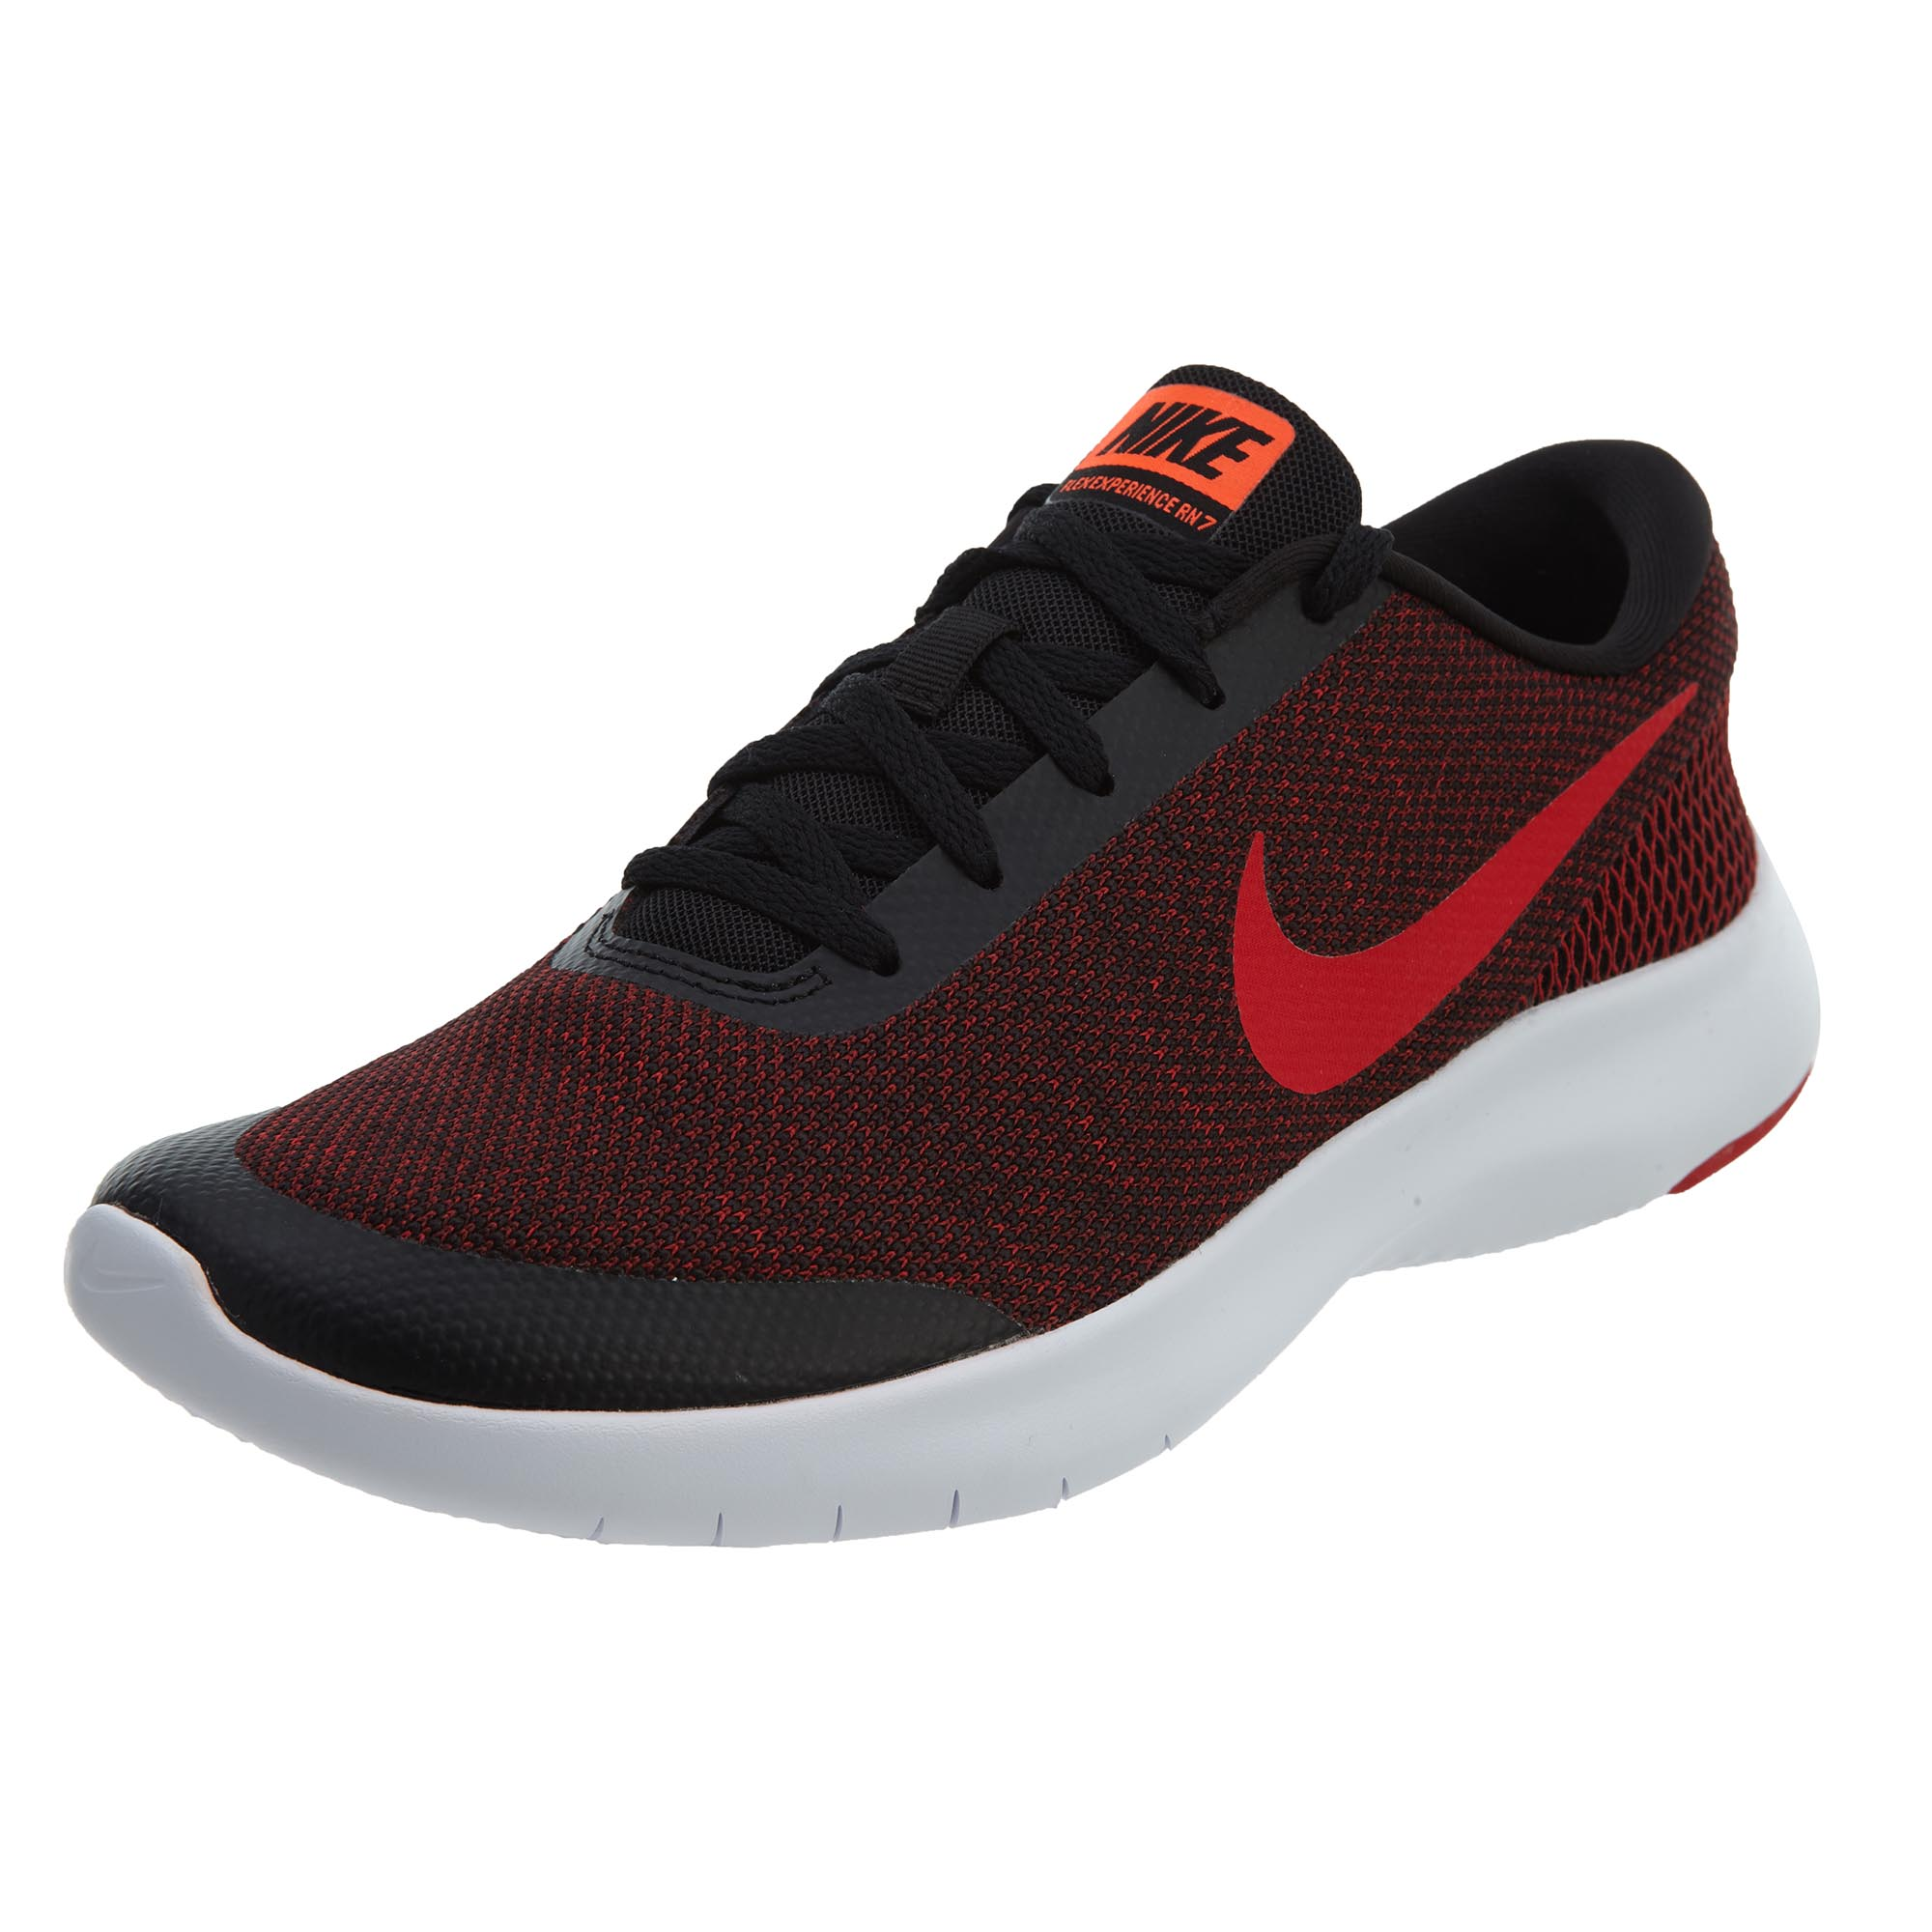 finest selection 477ab de922 Details about Nike Mens Flex Experience RN 7 Running Shoes 908985-006